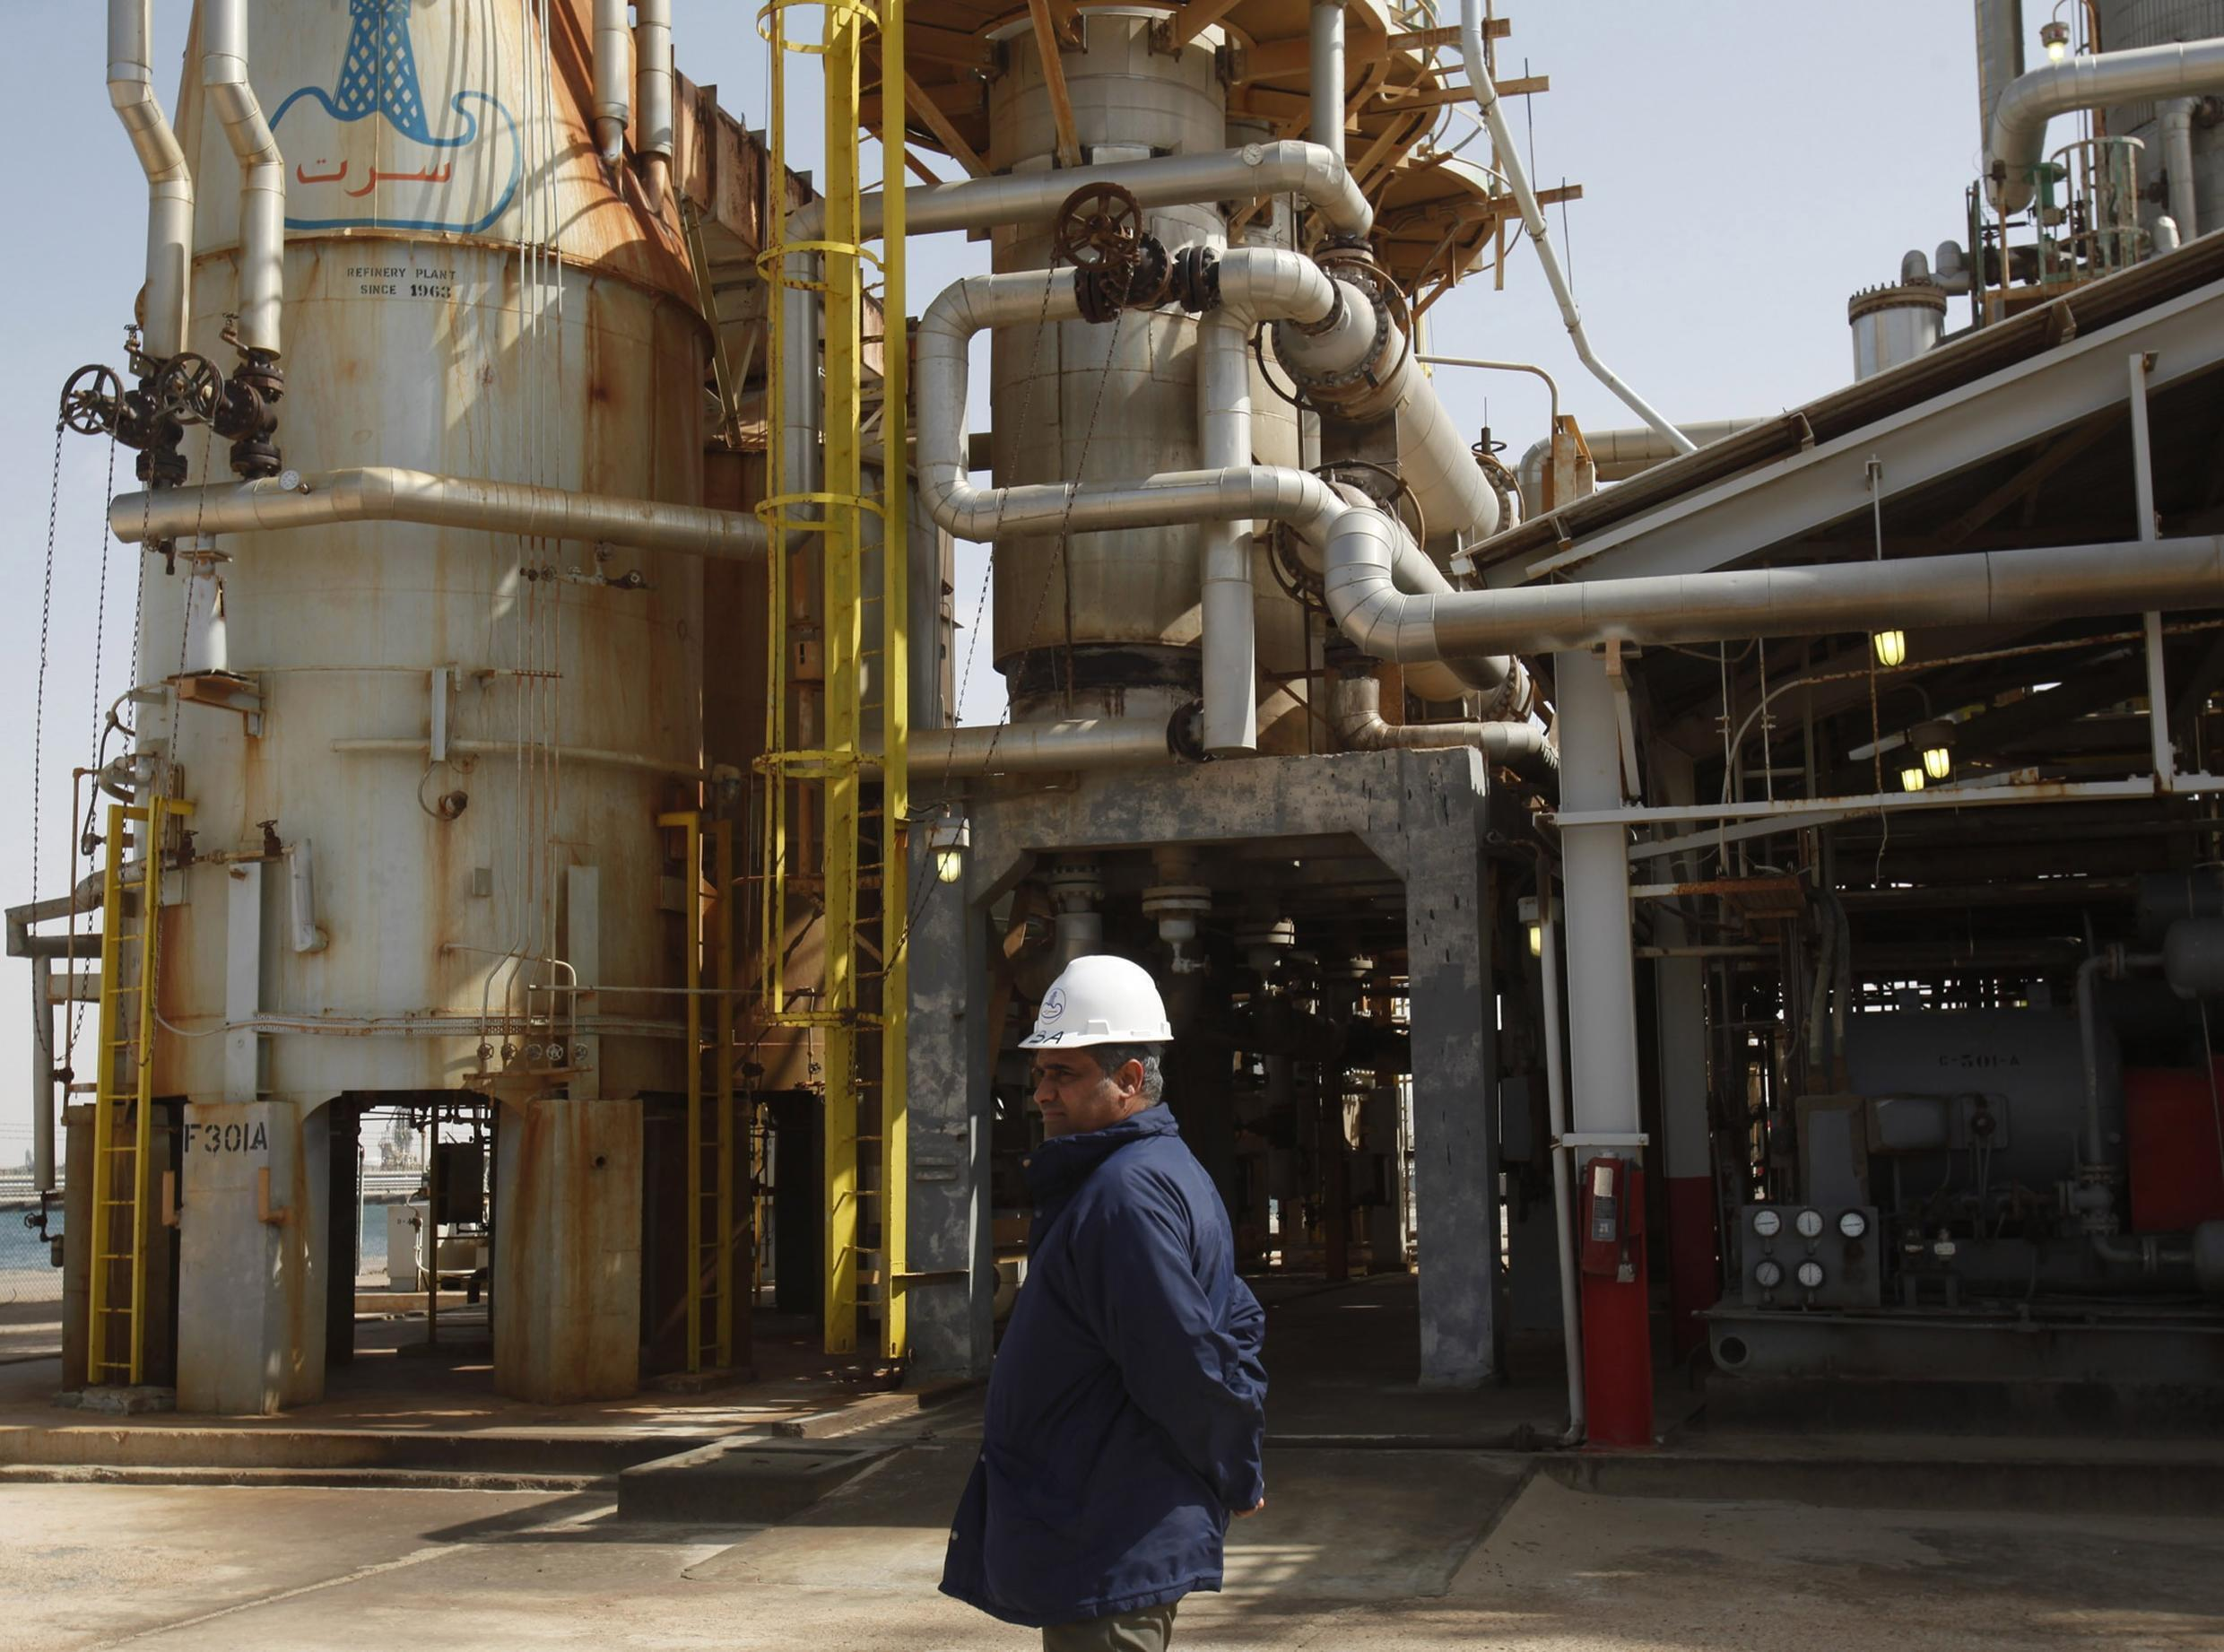 The oil terminal of Brega, which is under rebel control, 300 kilometres from Benghazi, 27 February 2011